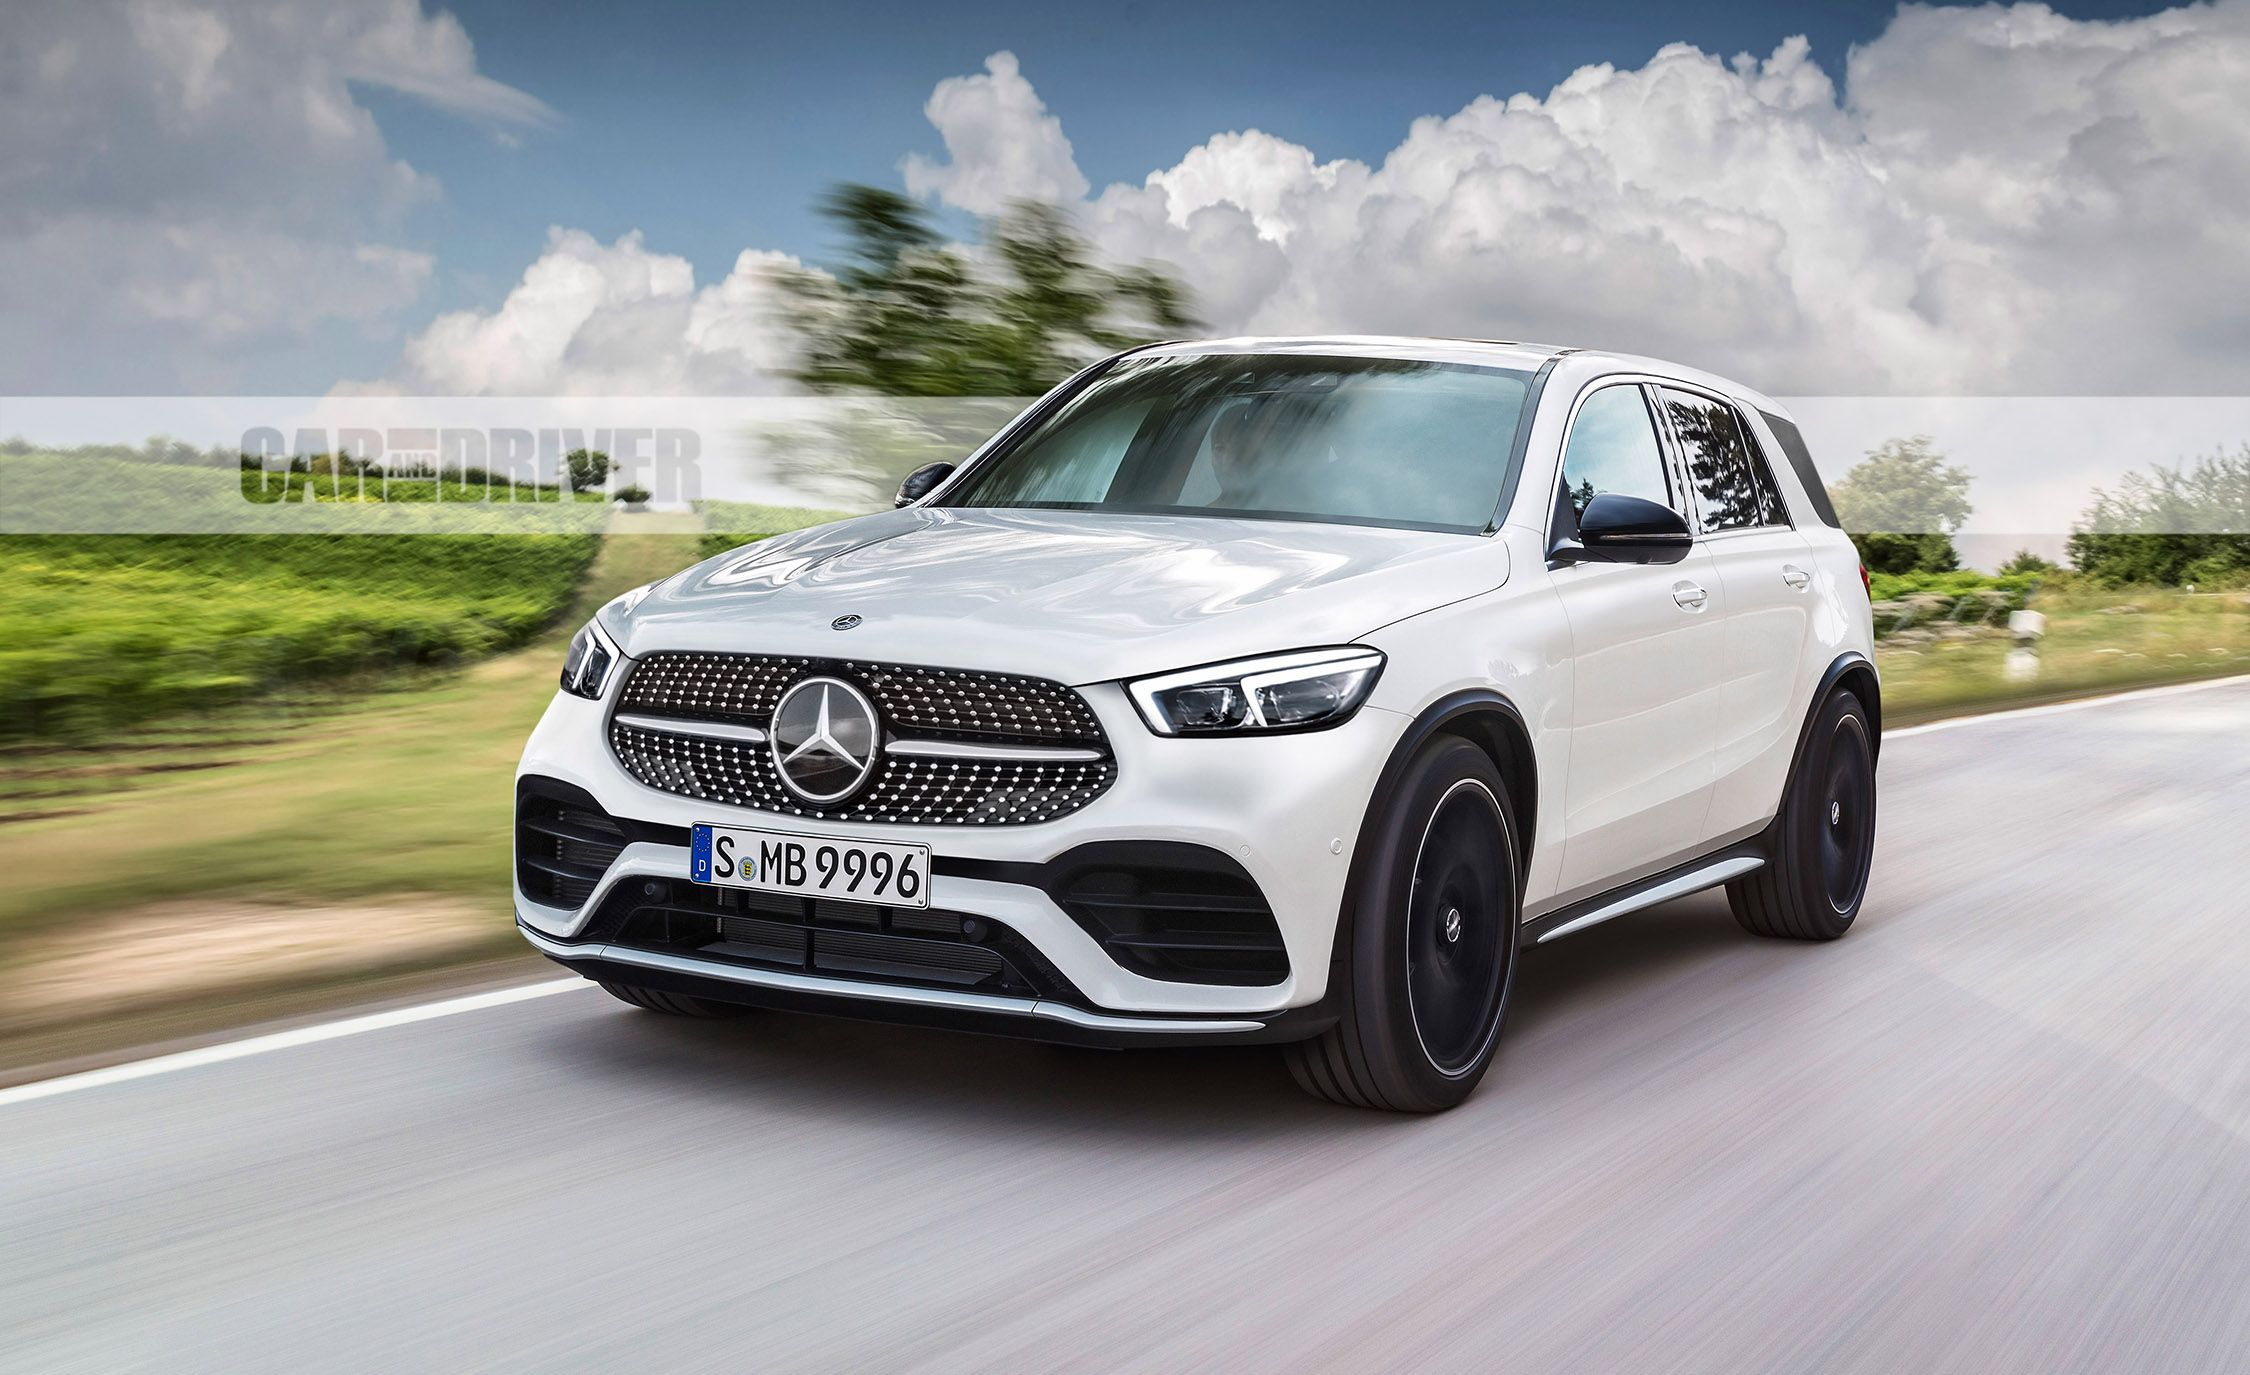 2019 Mercedes Benz GLE class Heres What We Know News